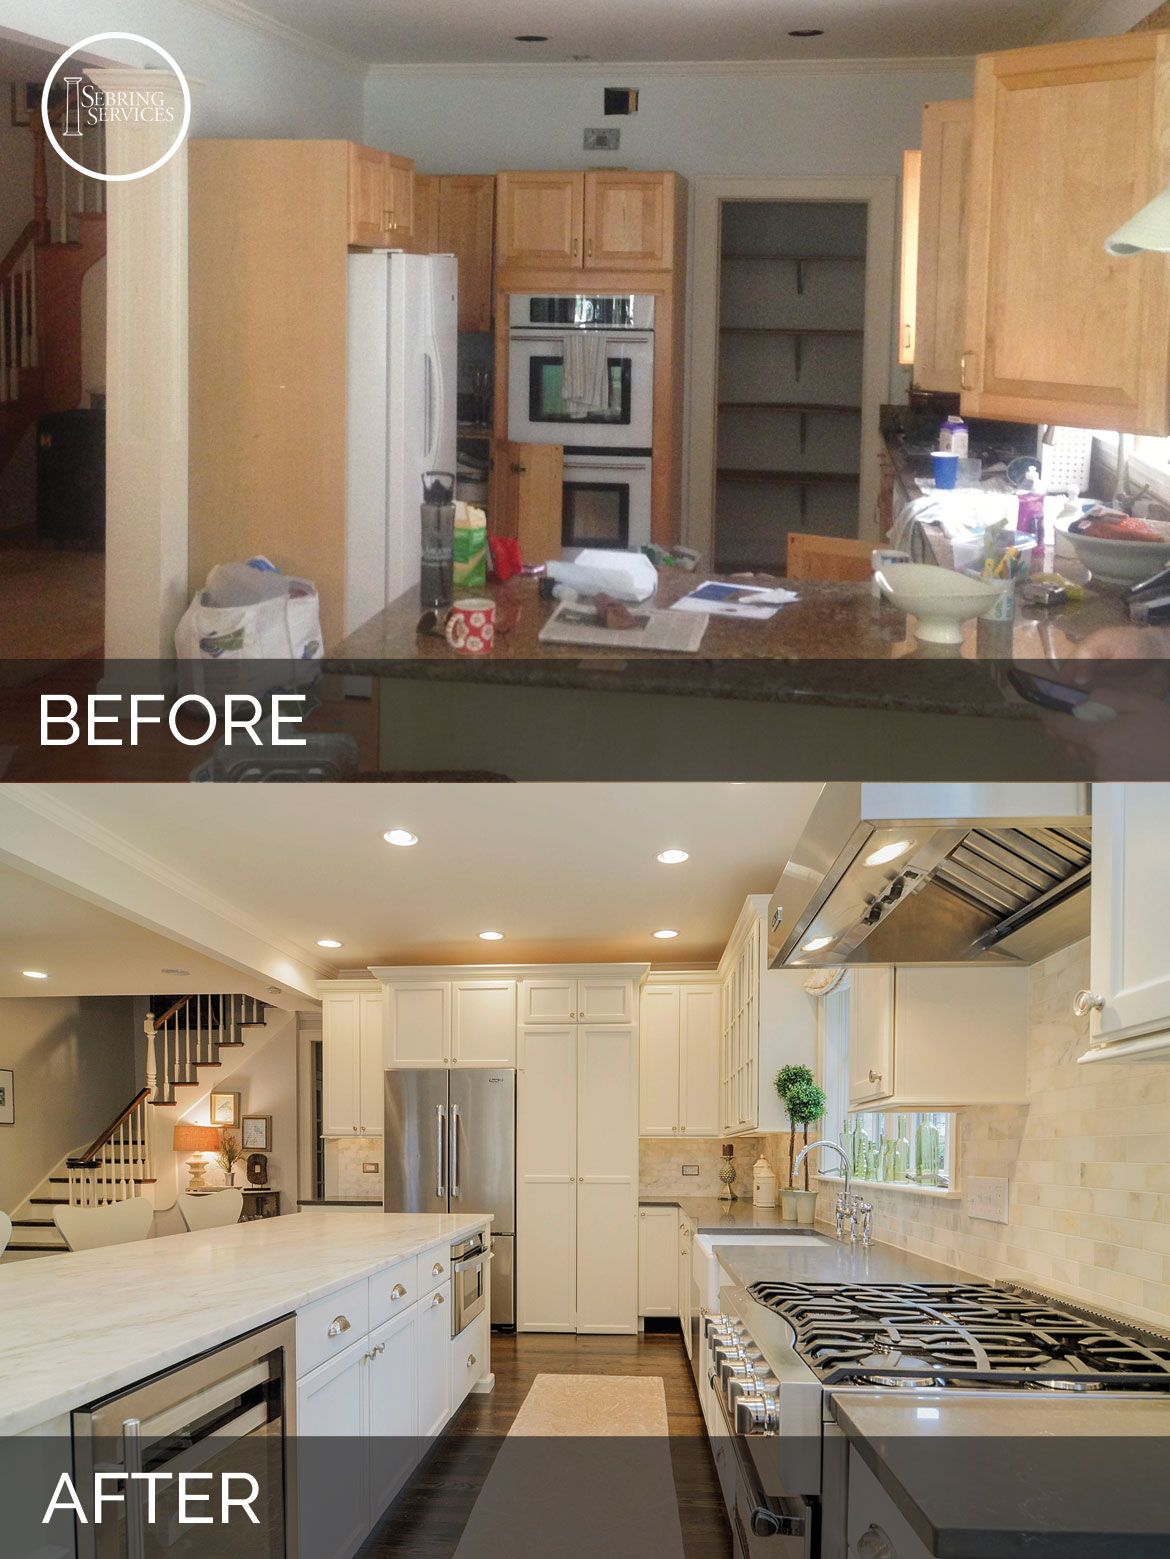 Before And After This Renovated Ranch Kitchen Beautifully Blends Rustic With Modern: Before And After Kitchen Remodeling